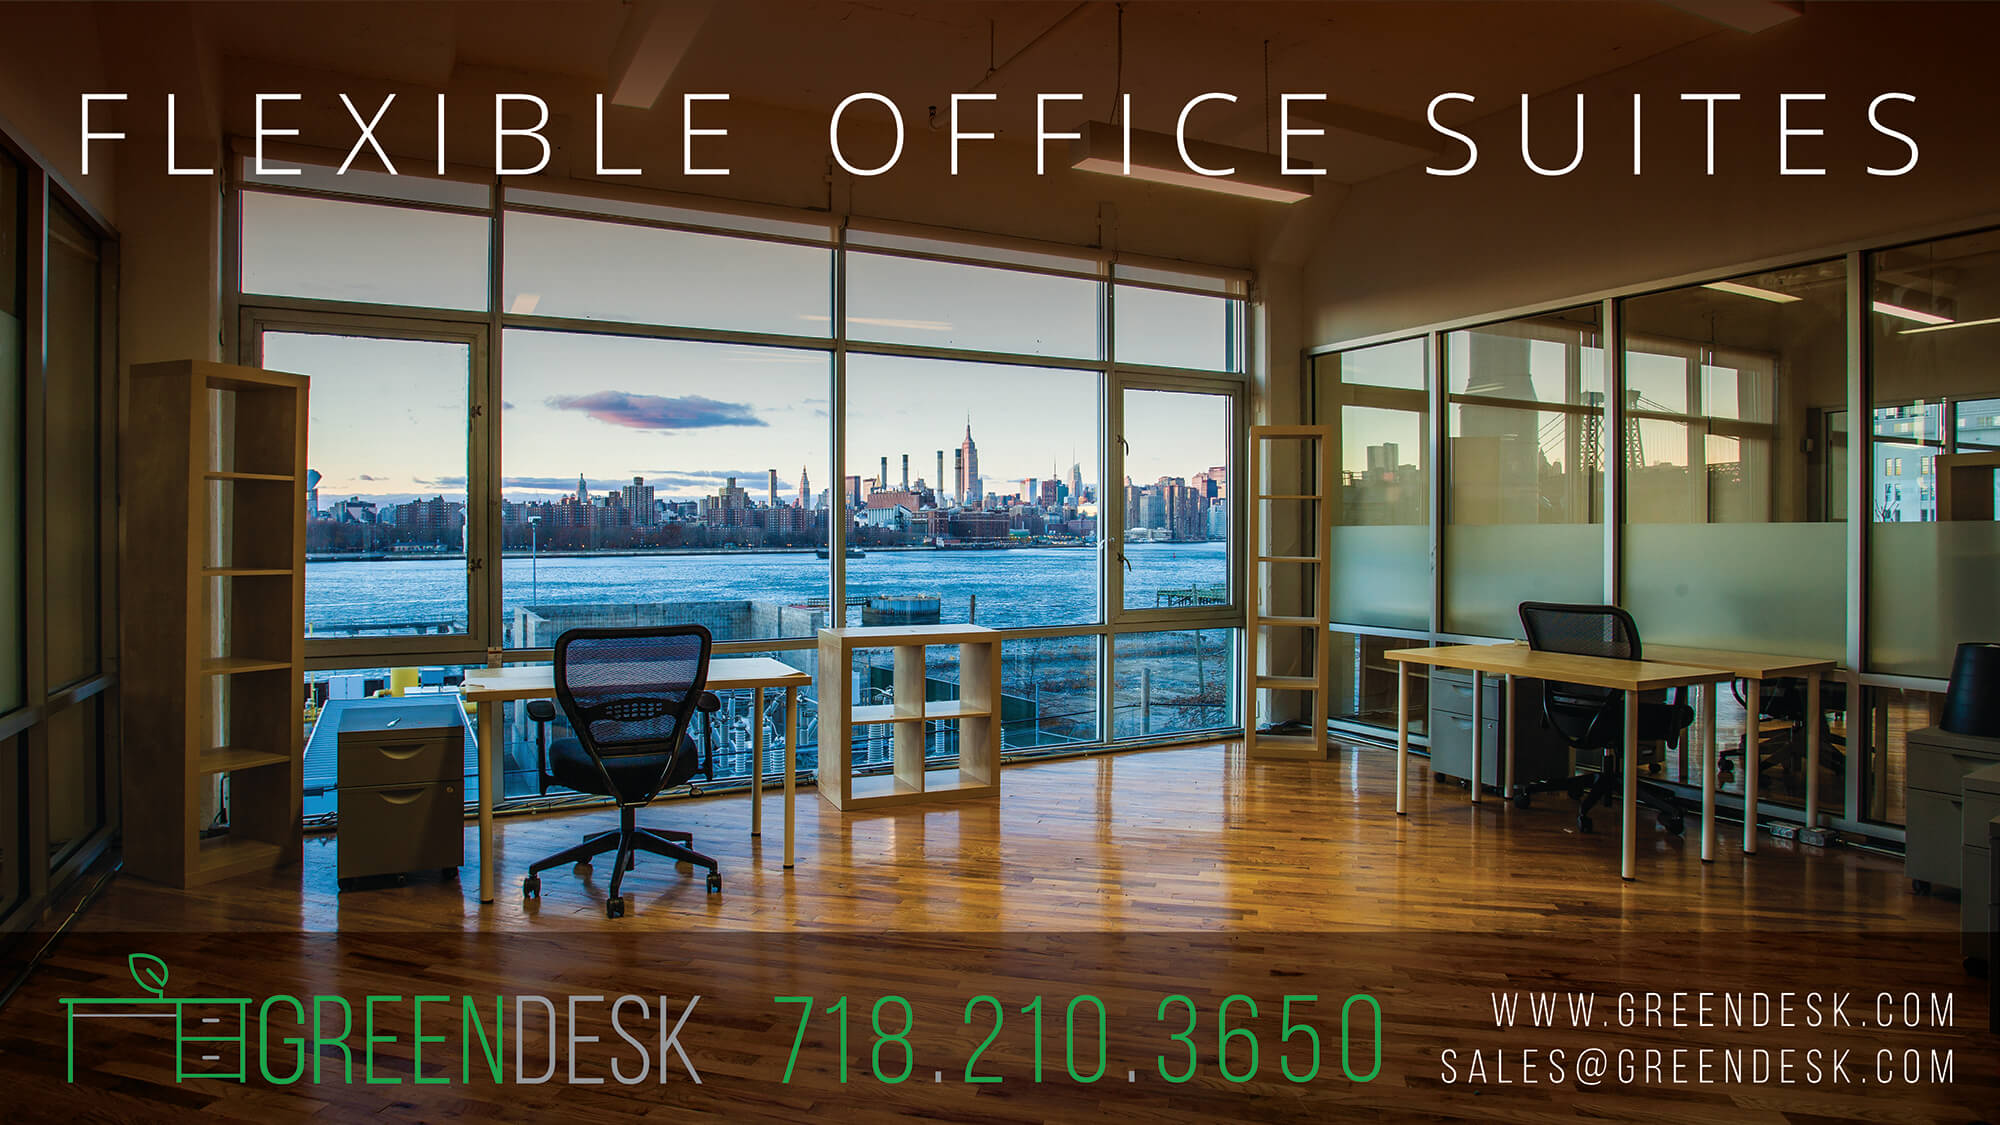 Greendesk Offices Ad